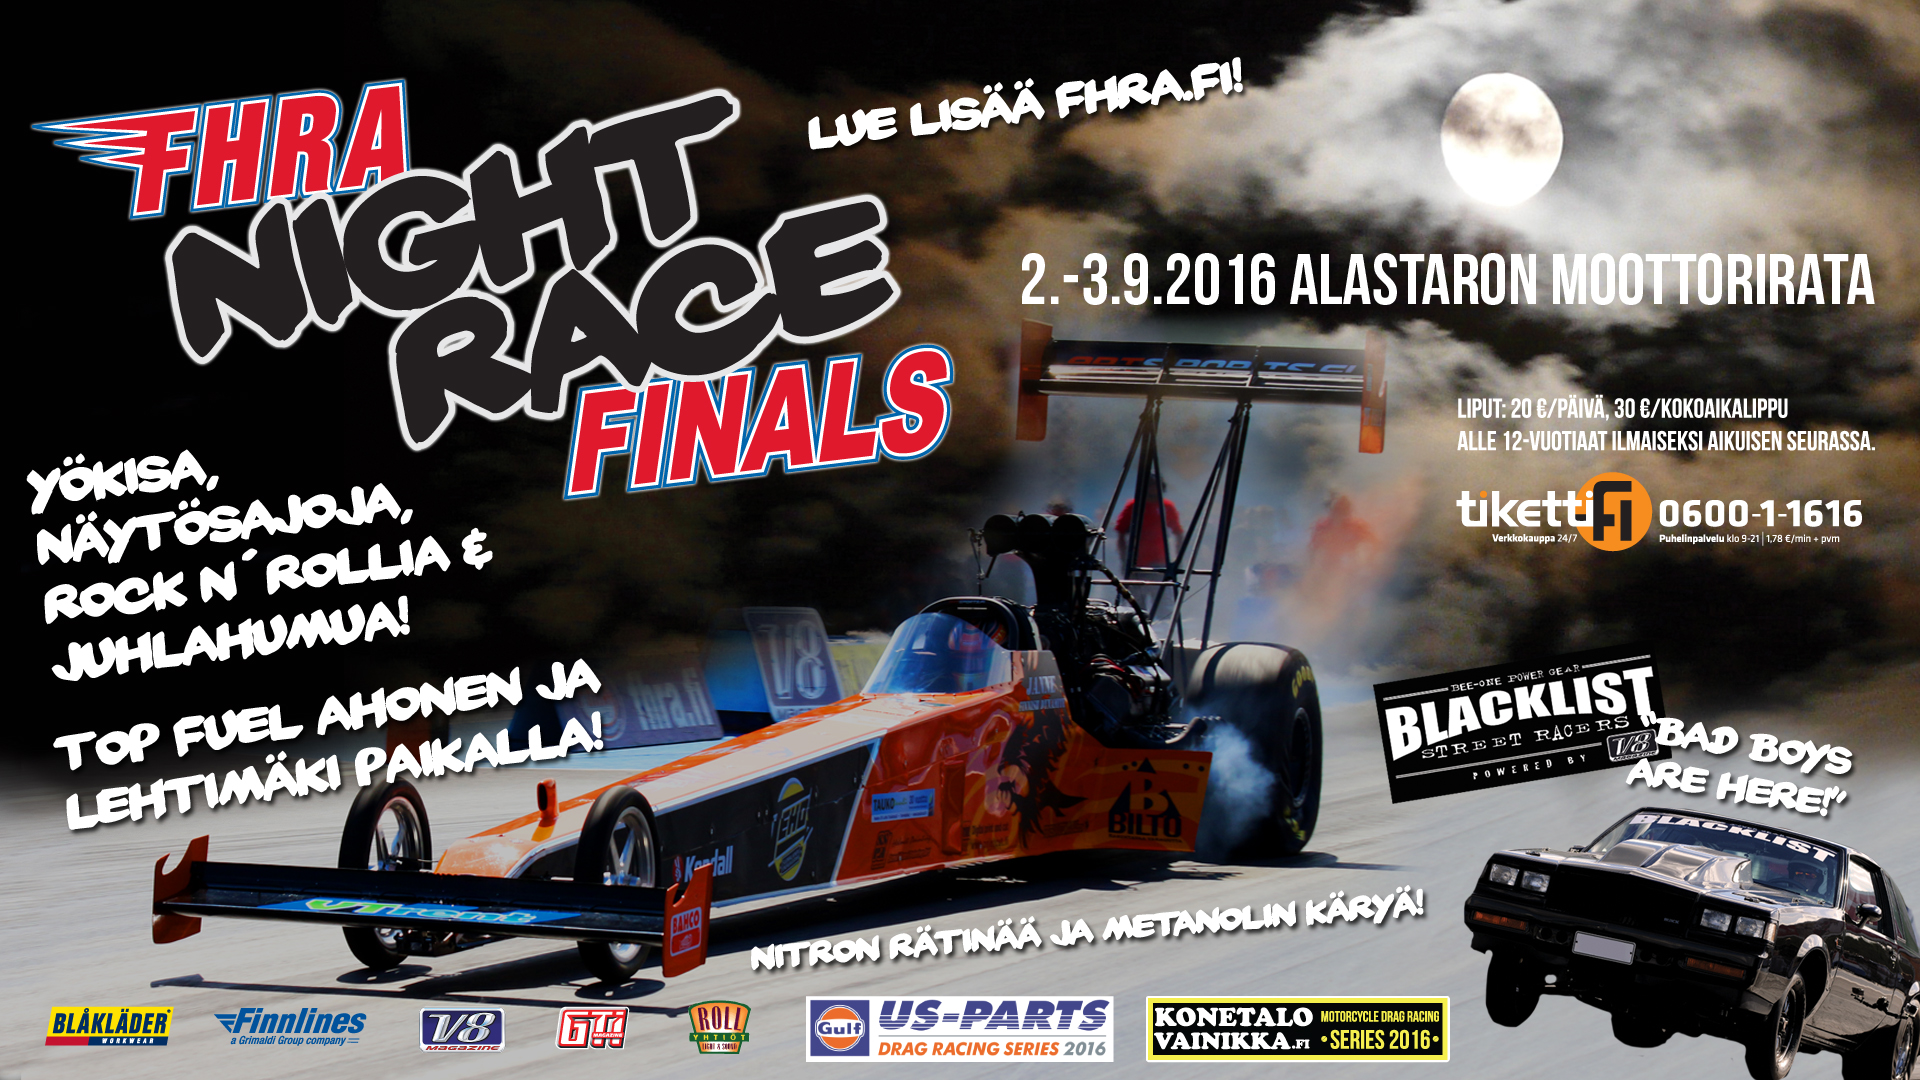 FHRAnightracefinals2016_1920x1080